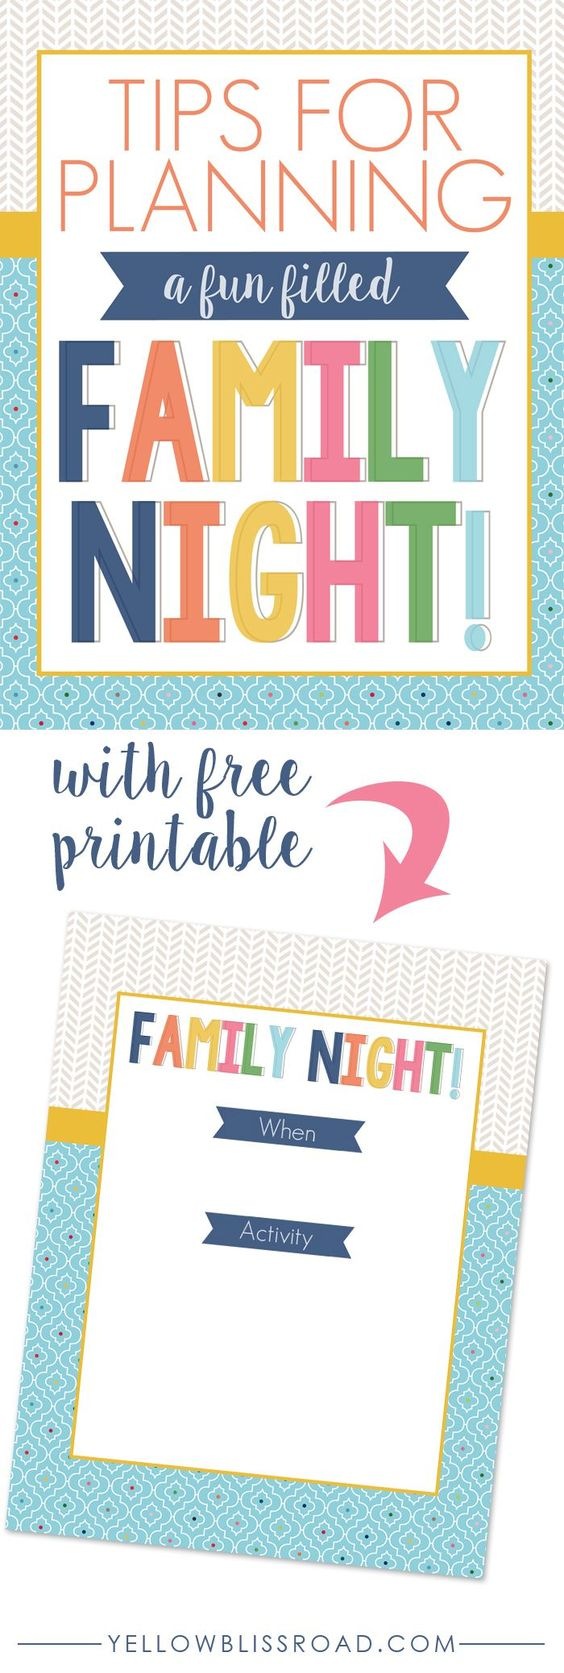 Tips for Planning a Fun Filled Family Night with Free Printable